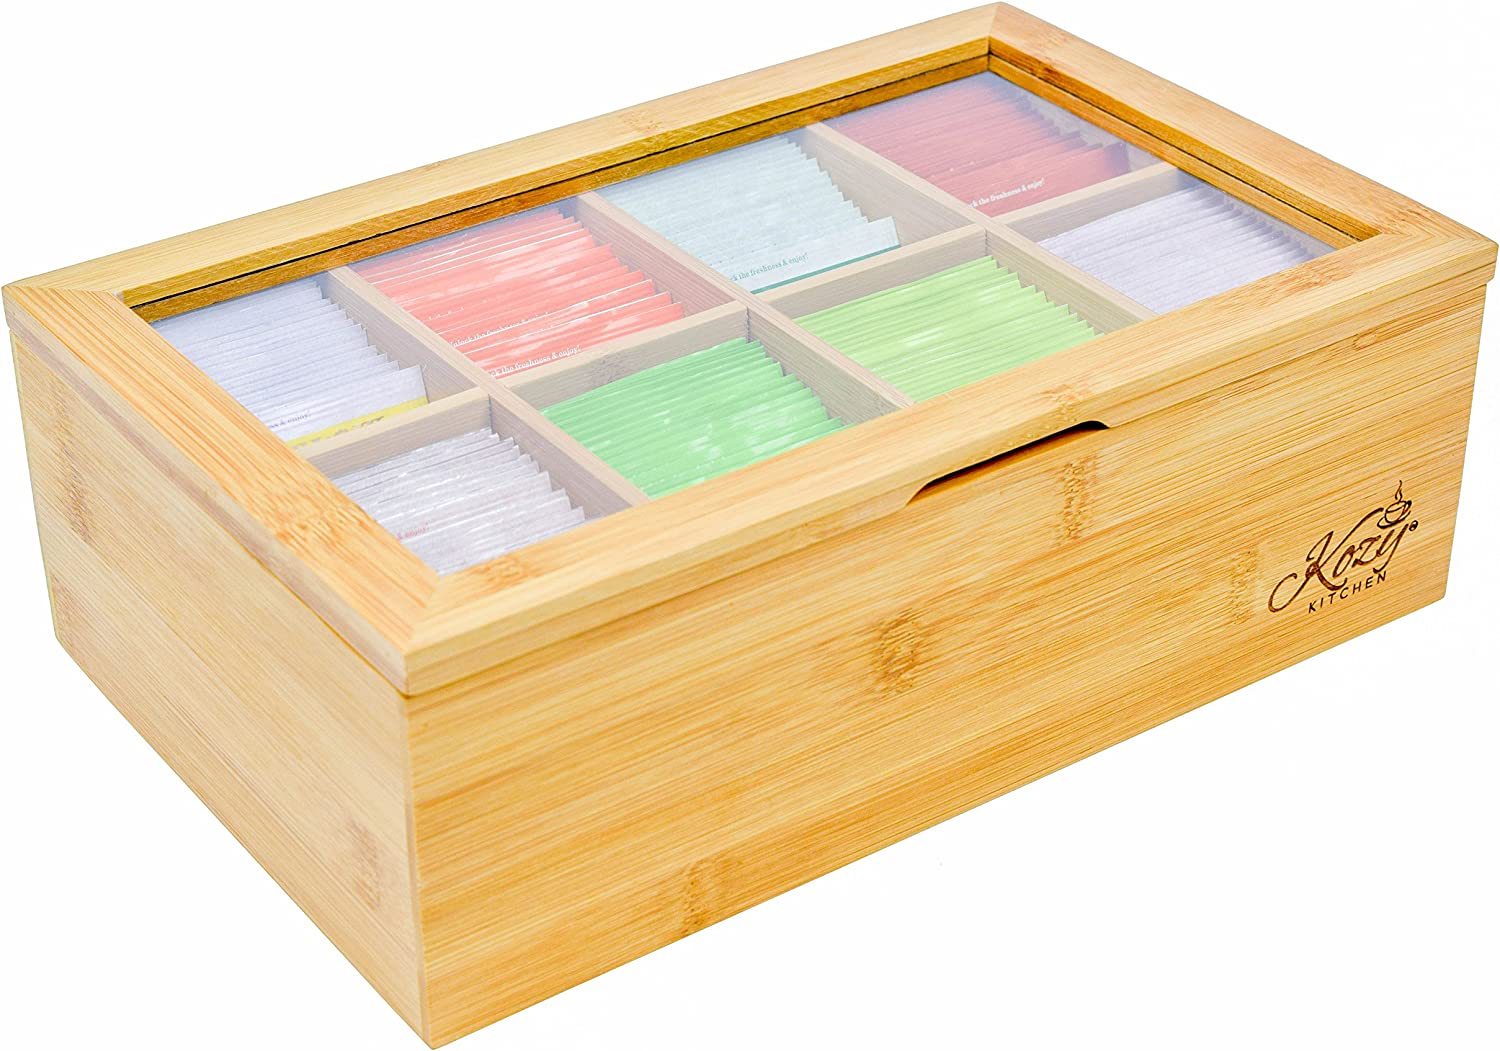 Bamboo Tea Box Storage Organizer, 100% Natural Wooden Finish Tea Bag Organizer 8 Storage Compartments and Clear Shatterproof Hinged Lid